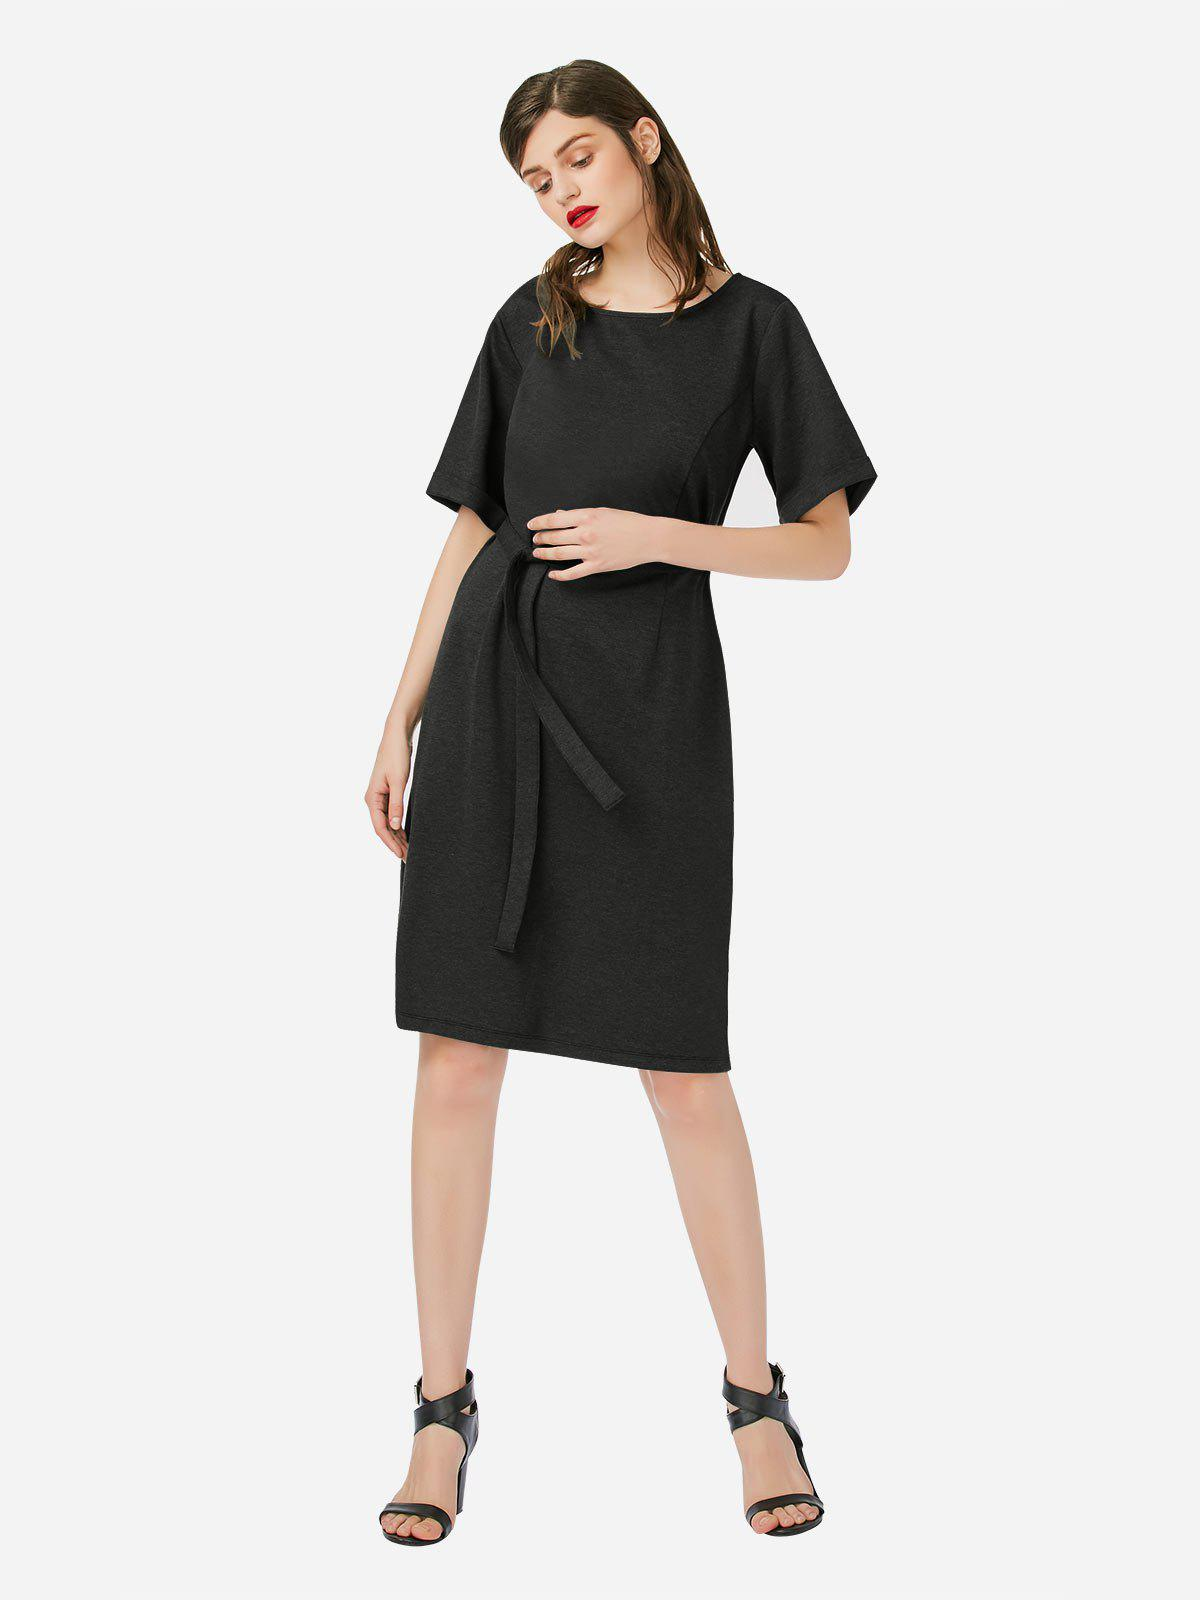 ZAN.STYLE Crew Neck Dress - HEATHER BLACK M